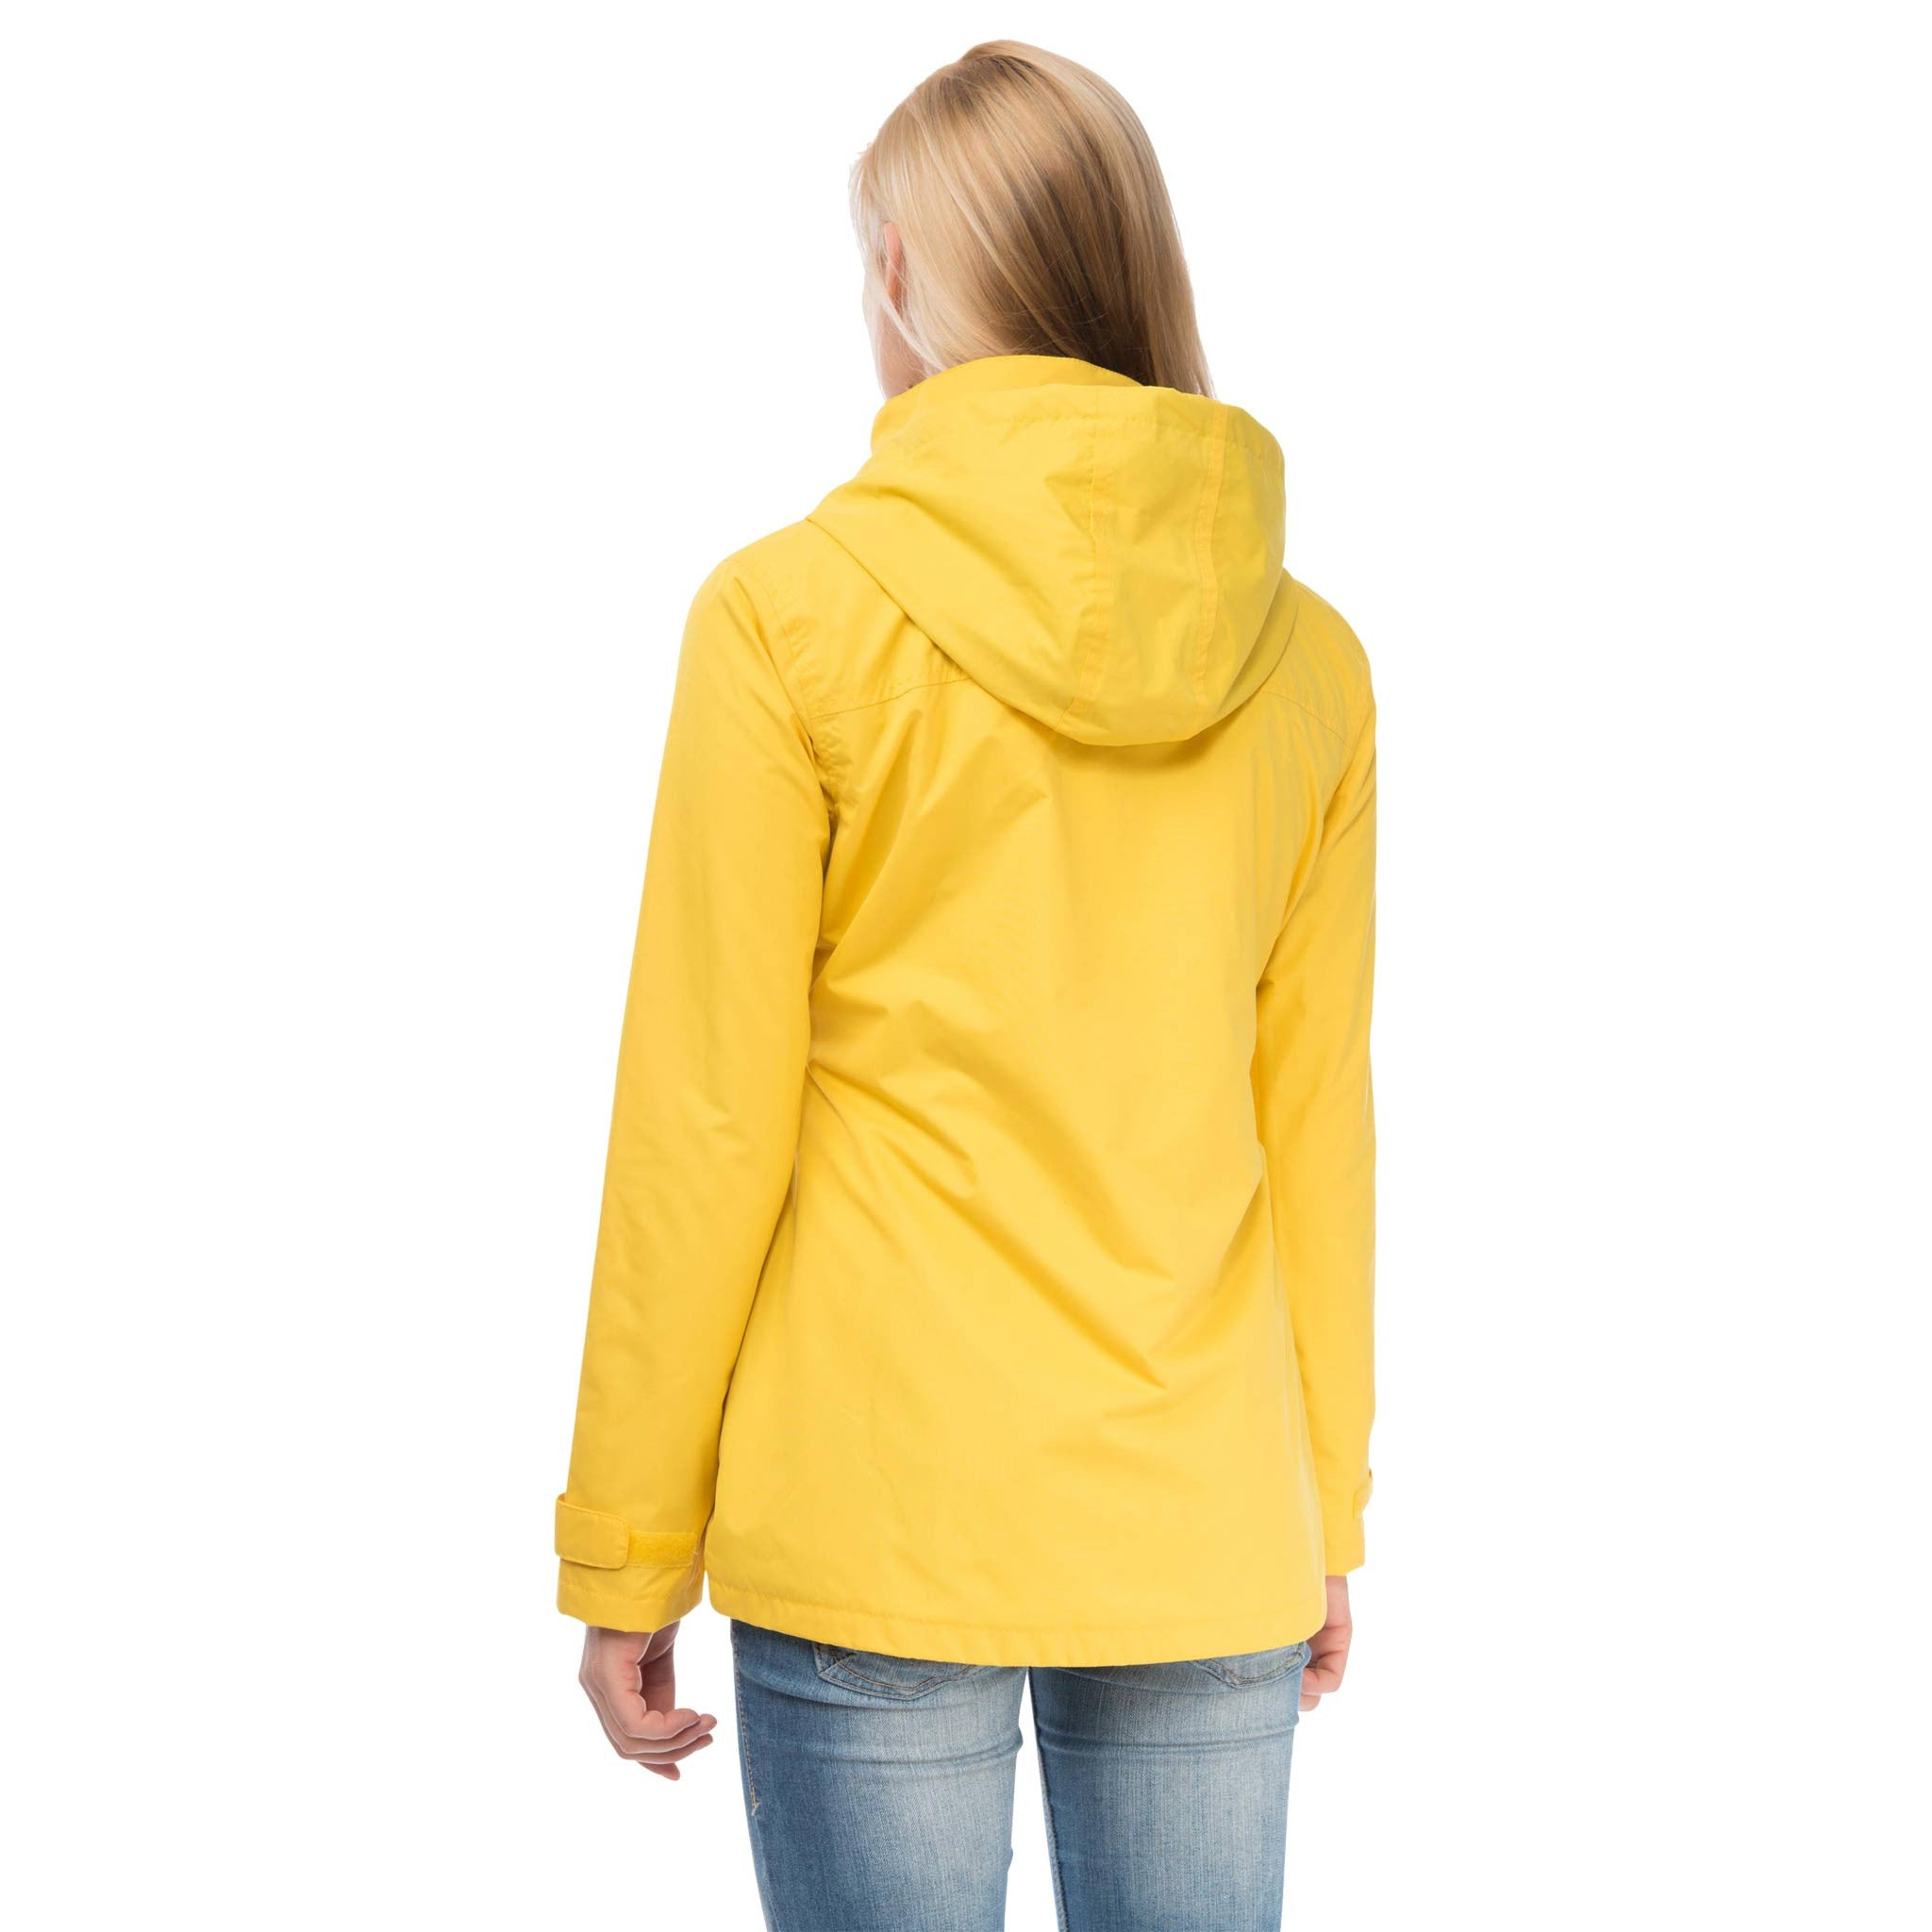 Beachcomber Waterproof Hooded Jacket in Sunbeam Yellow, Modelled Back View | Lighthouse